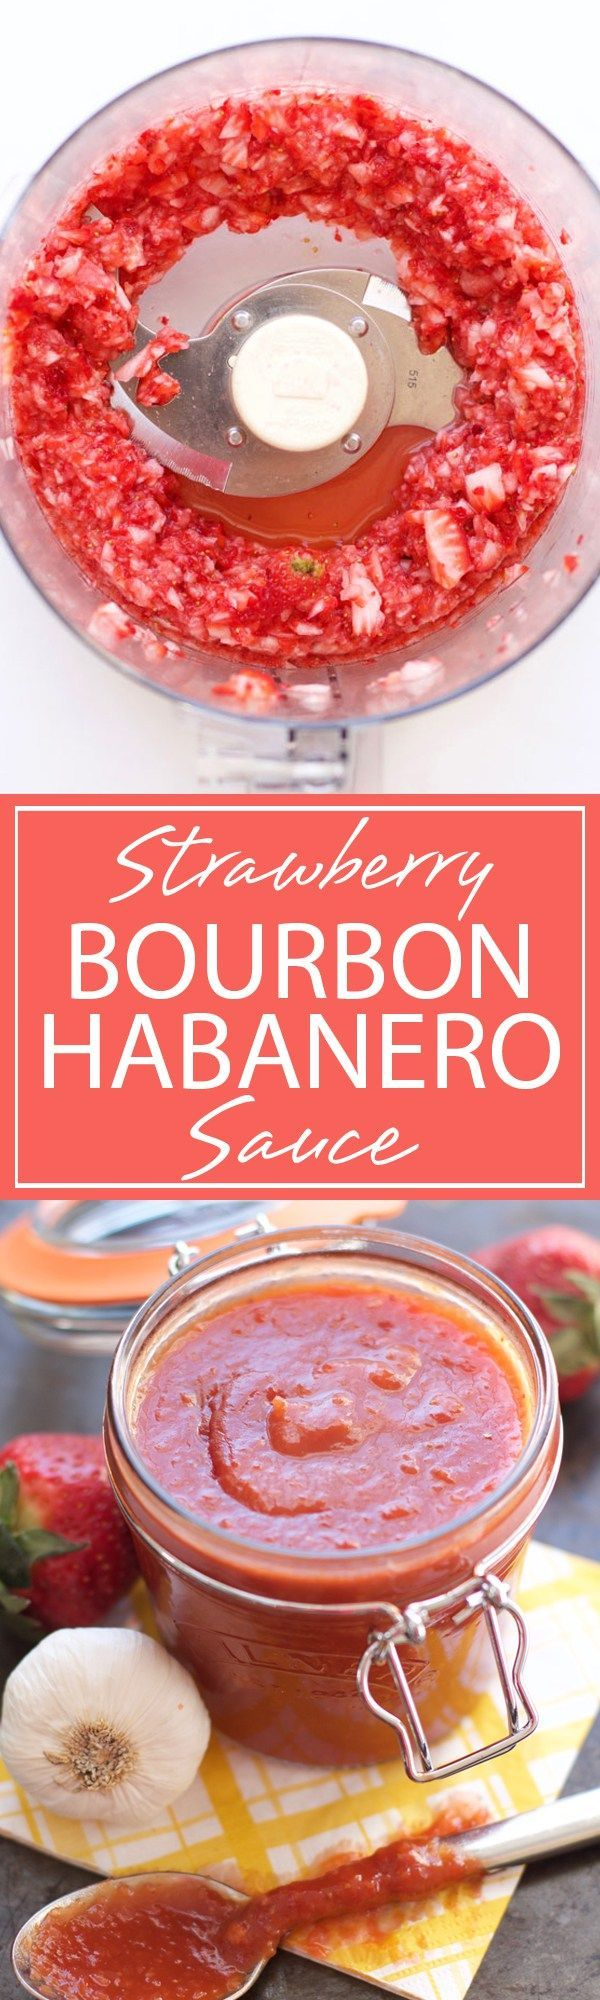 Strawberry Bourbon Habanero BBQ Sauce | Sweet, oaky and spicy flavors are bursting in this Strawberry Bourbon Habanero BBQ Sauce. Get ready to use this recipe for all your grilling adventures! | forkknifeandlove.com